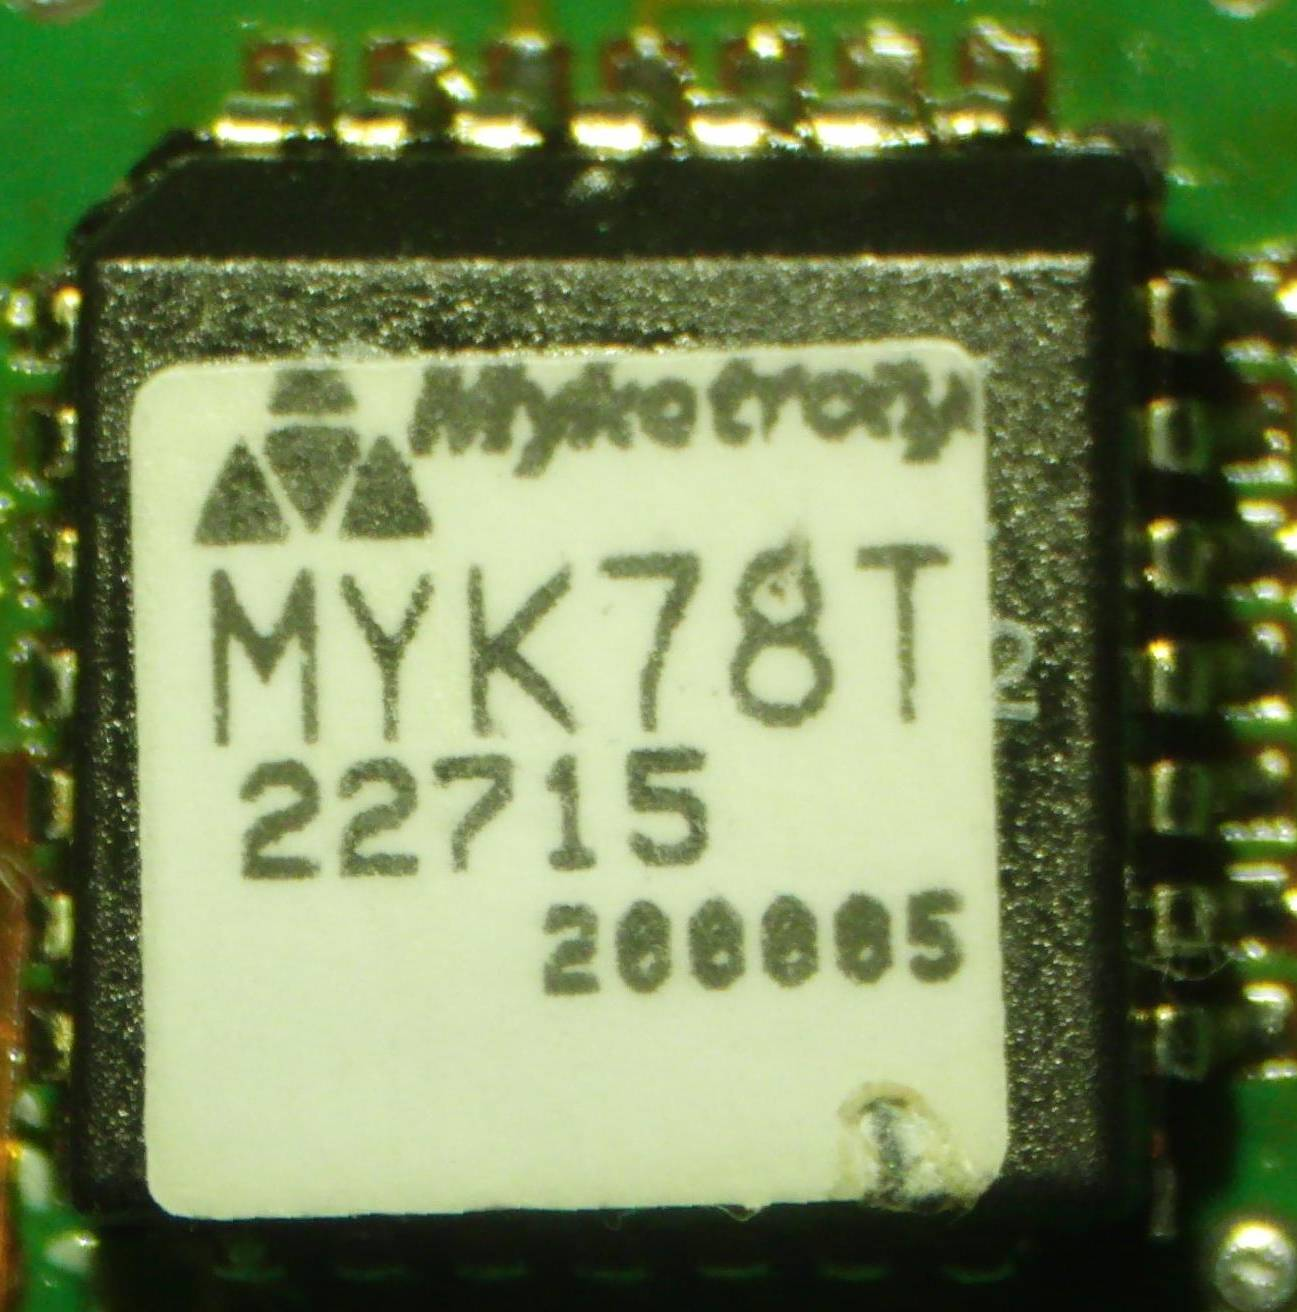 mcmaster:mykotronx:myk-78t:pack_top_label.jpg